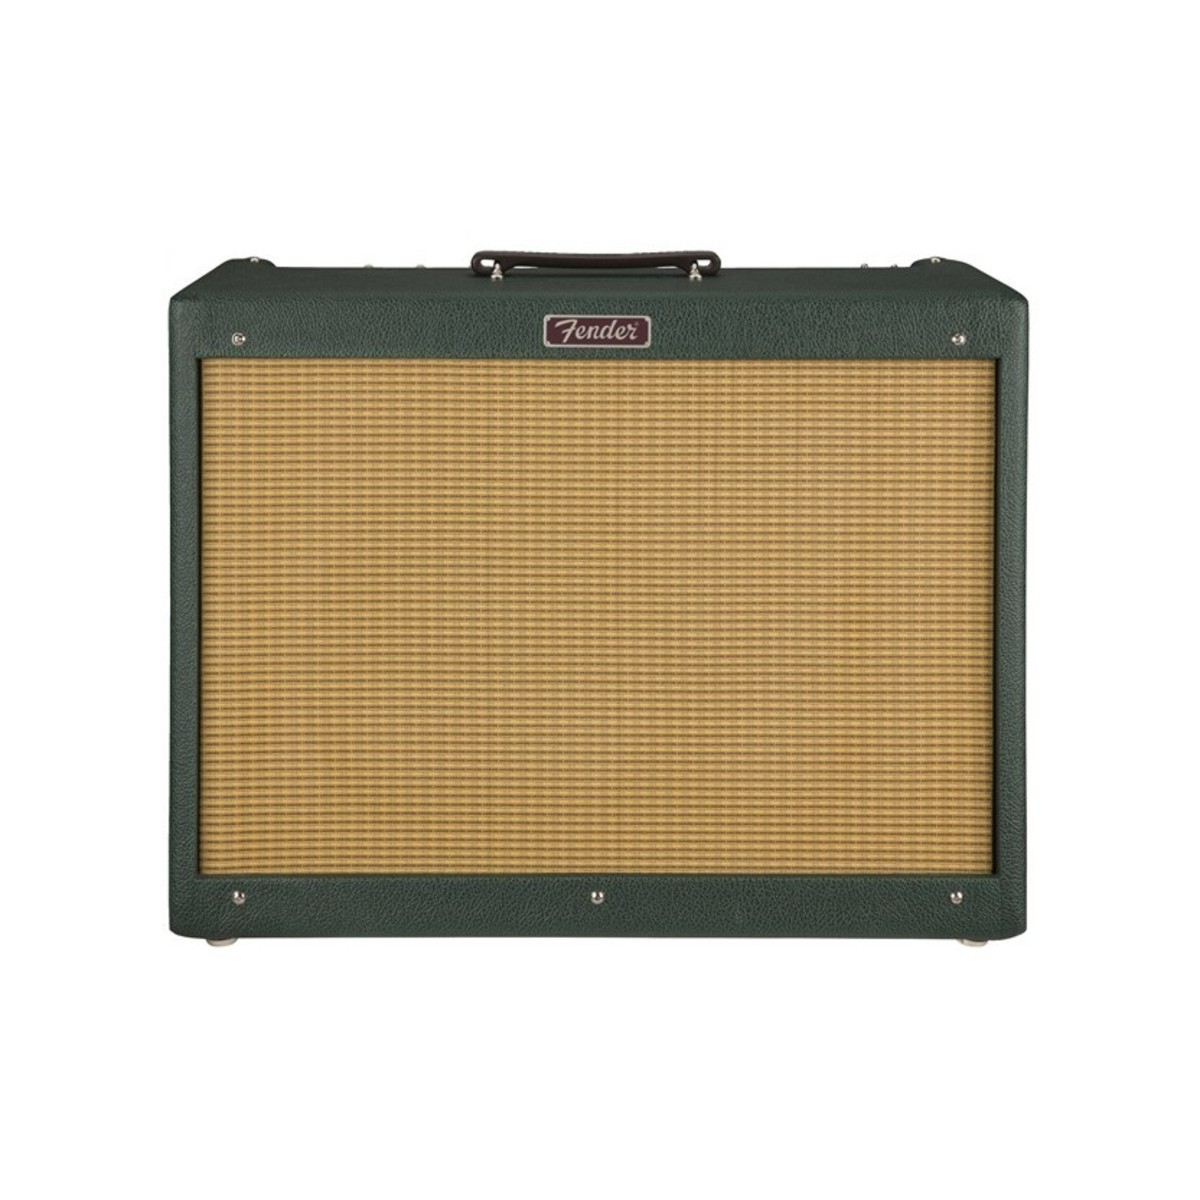 disc fender blues deluxe reissue ltd emerald wheat at gear4music. Black Bedroom Furniture Sets. Home Design Ideas